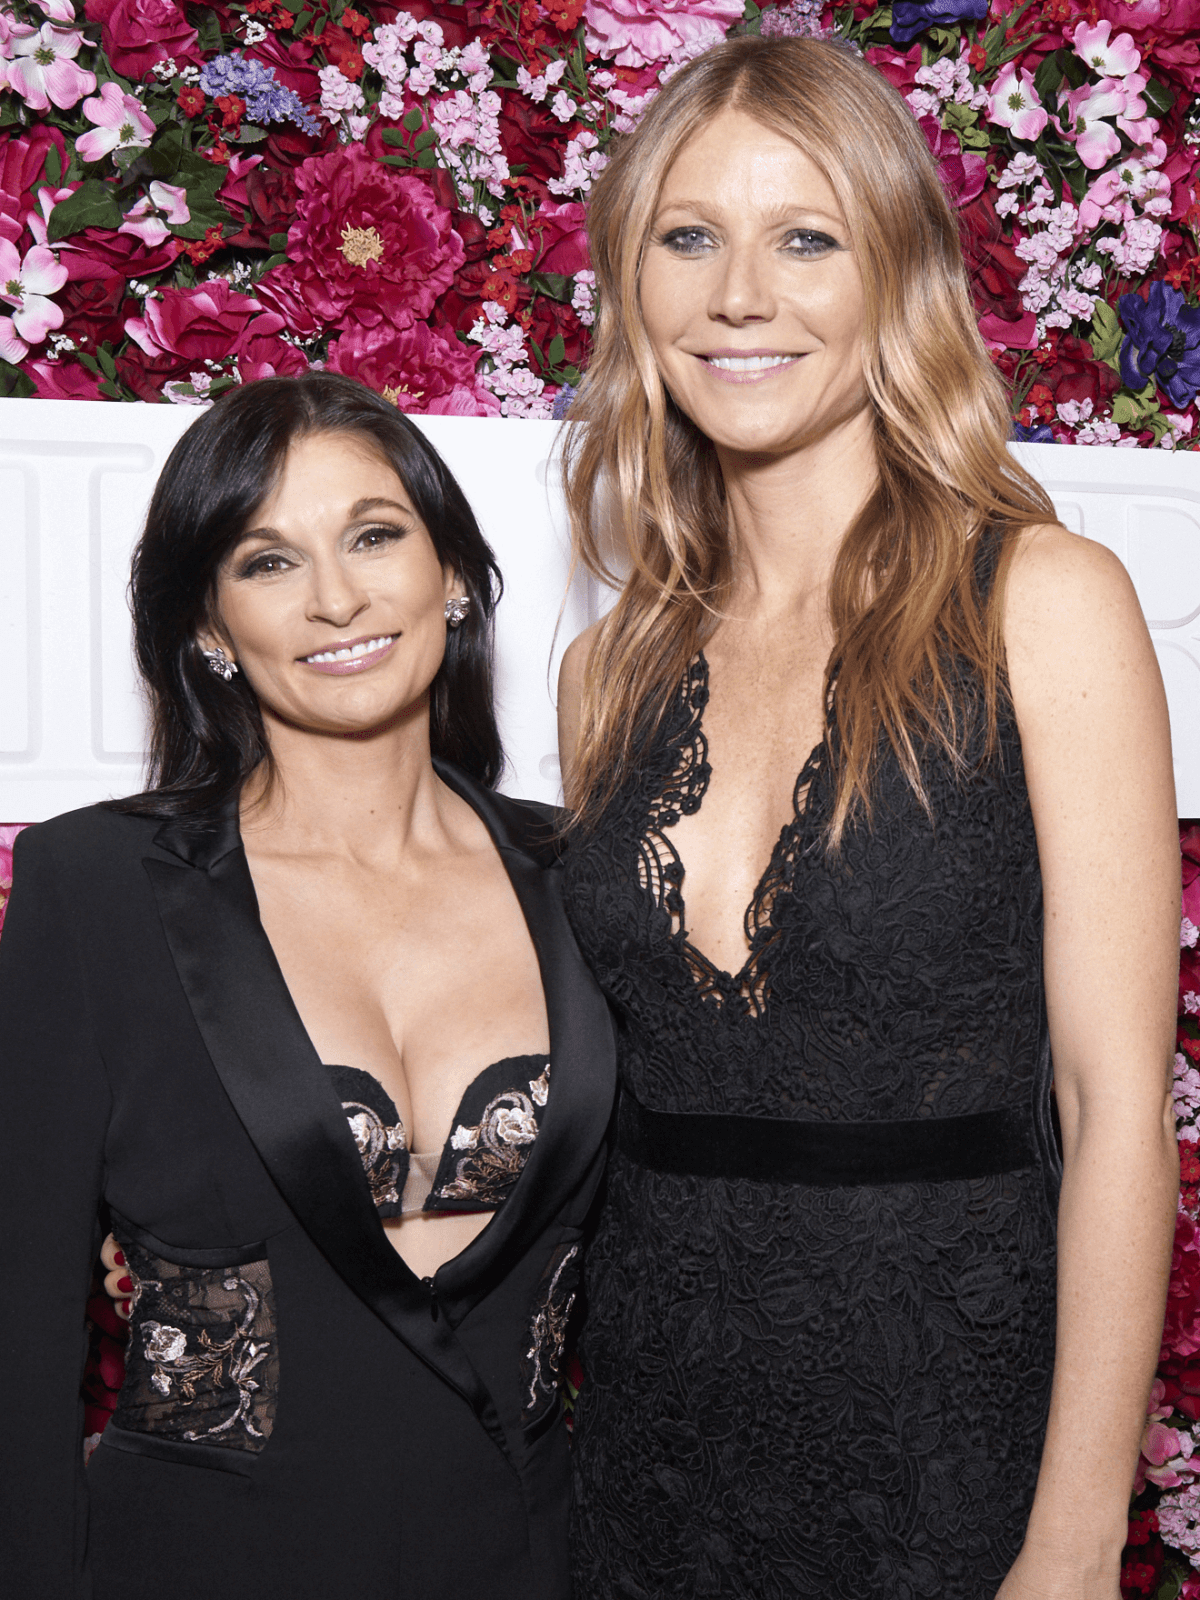 Houston, NYFW La Perla, Feb 2017,  Creative Director of La Perla Julia Haart and Gwyneth Paltrow